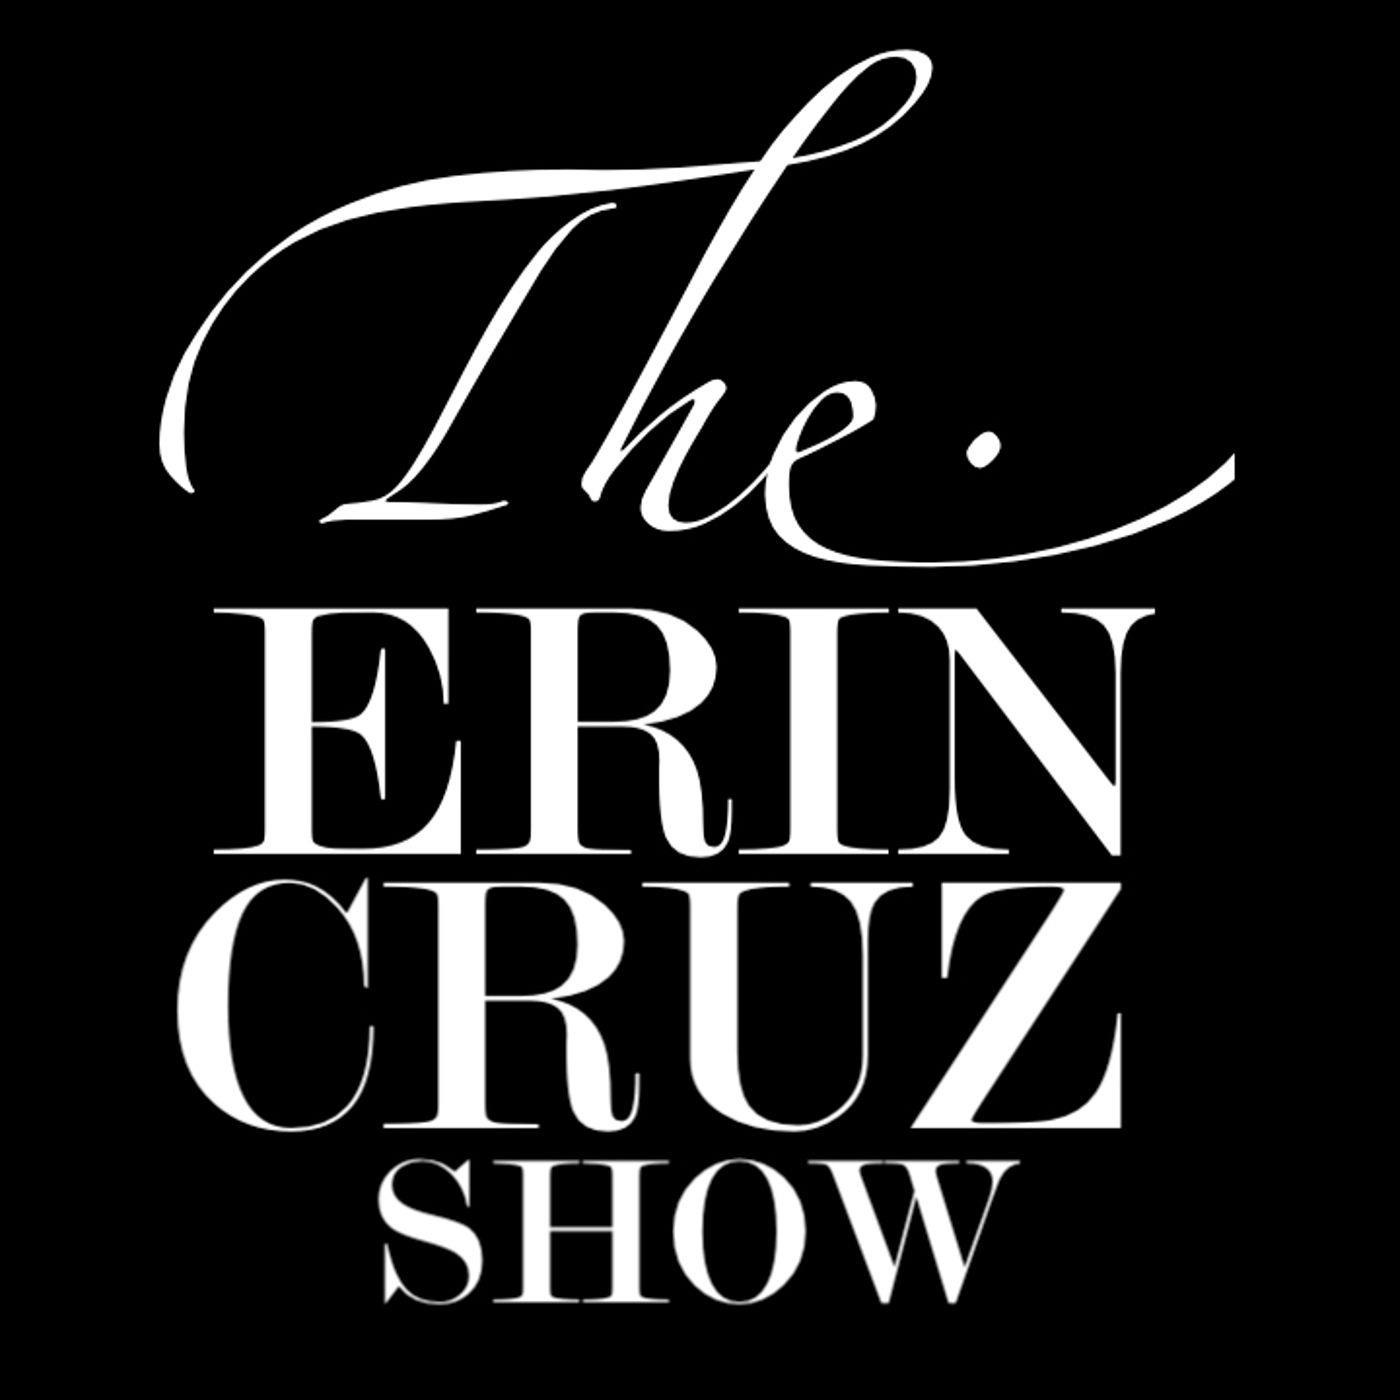 CANDIDATE FOR CA GOP CHAIR TRAVIS ALLEN JOINS ERIN CRUZ TO TALK CALIFORNIA POLITICS